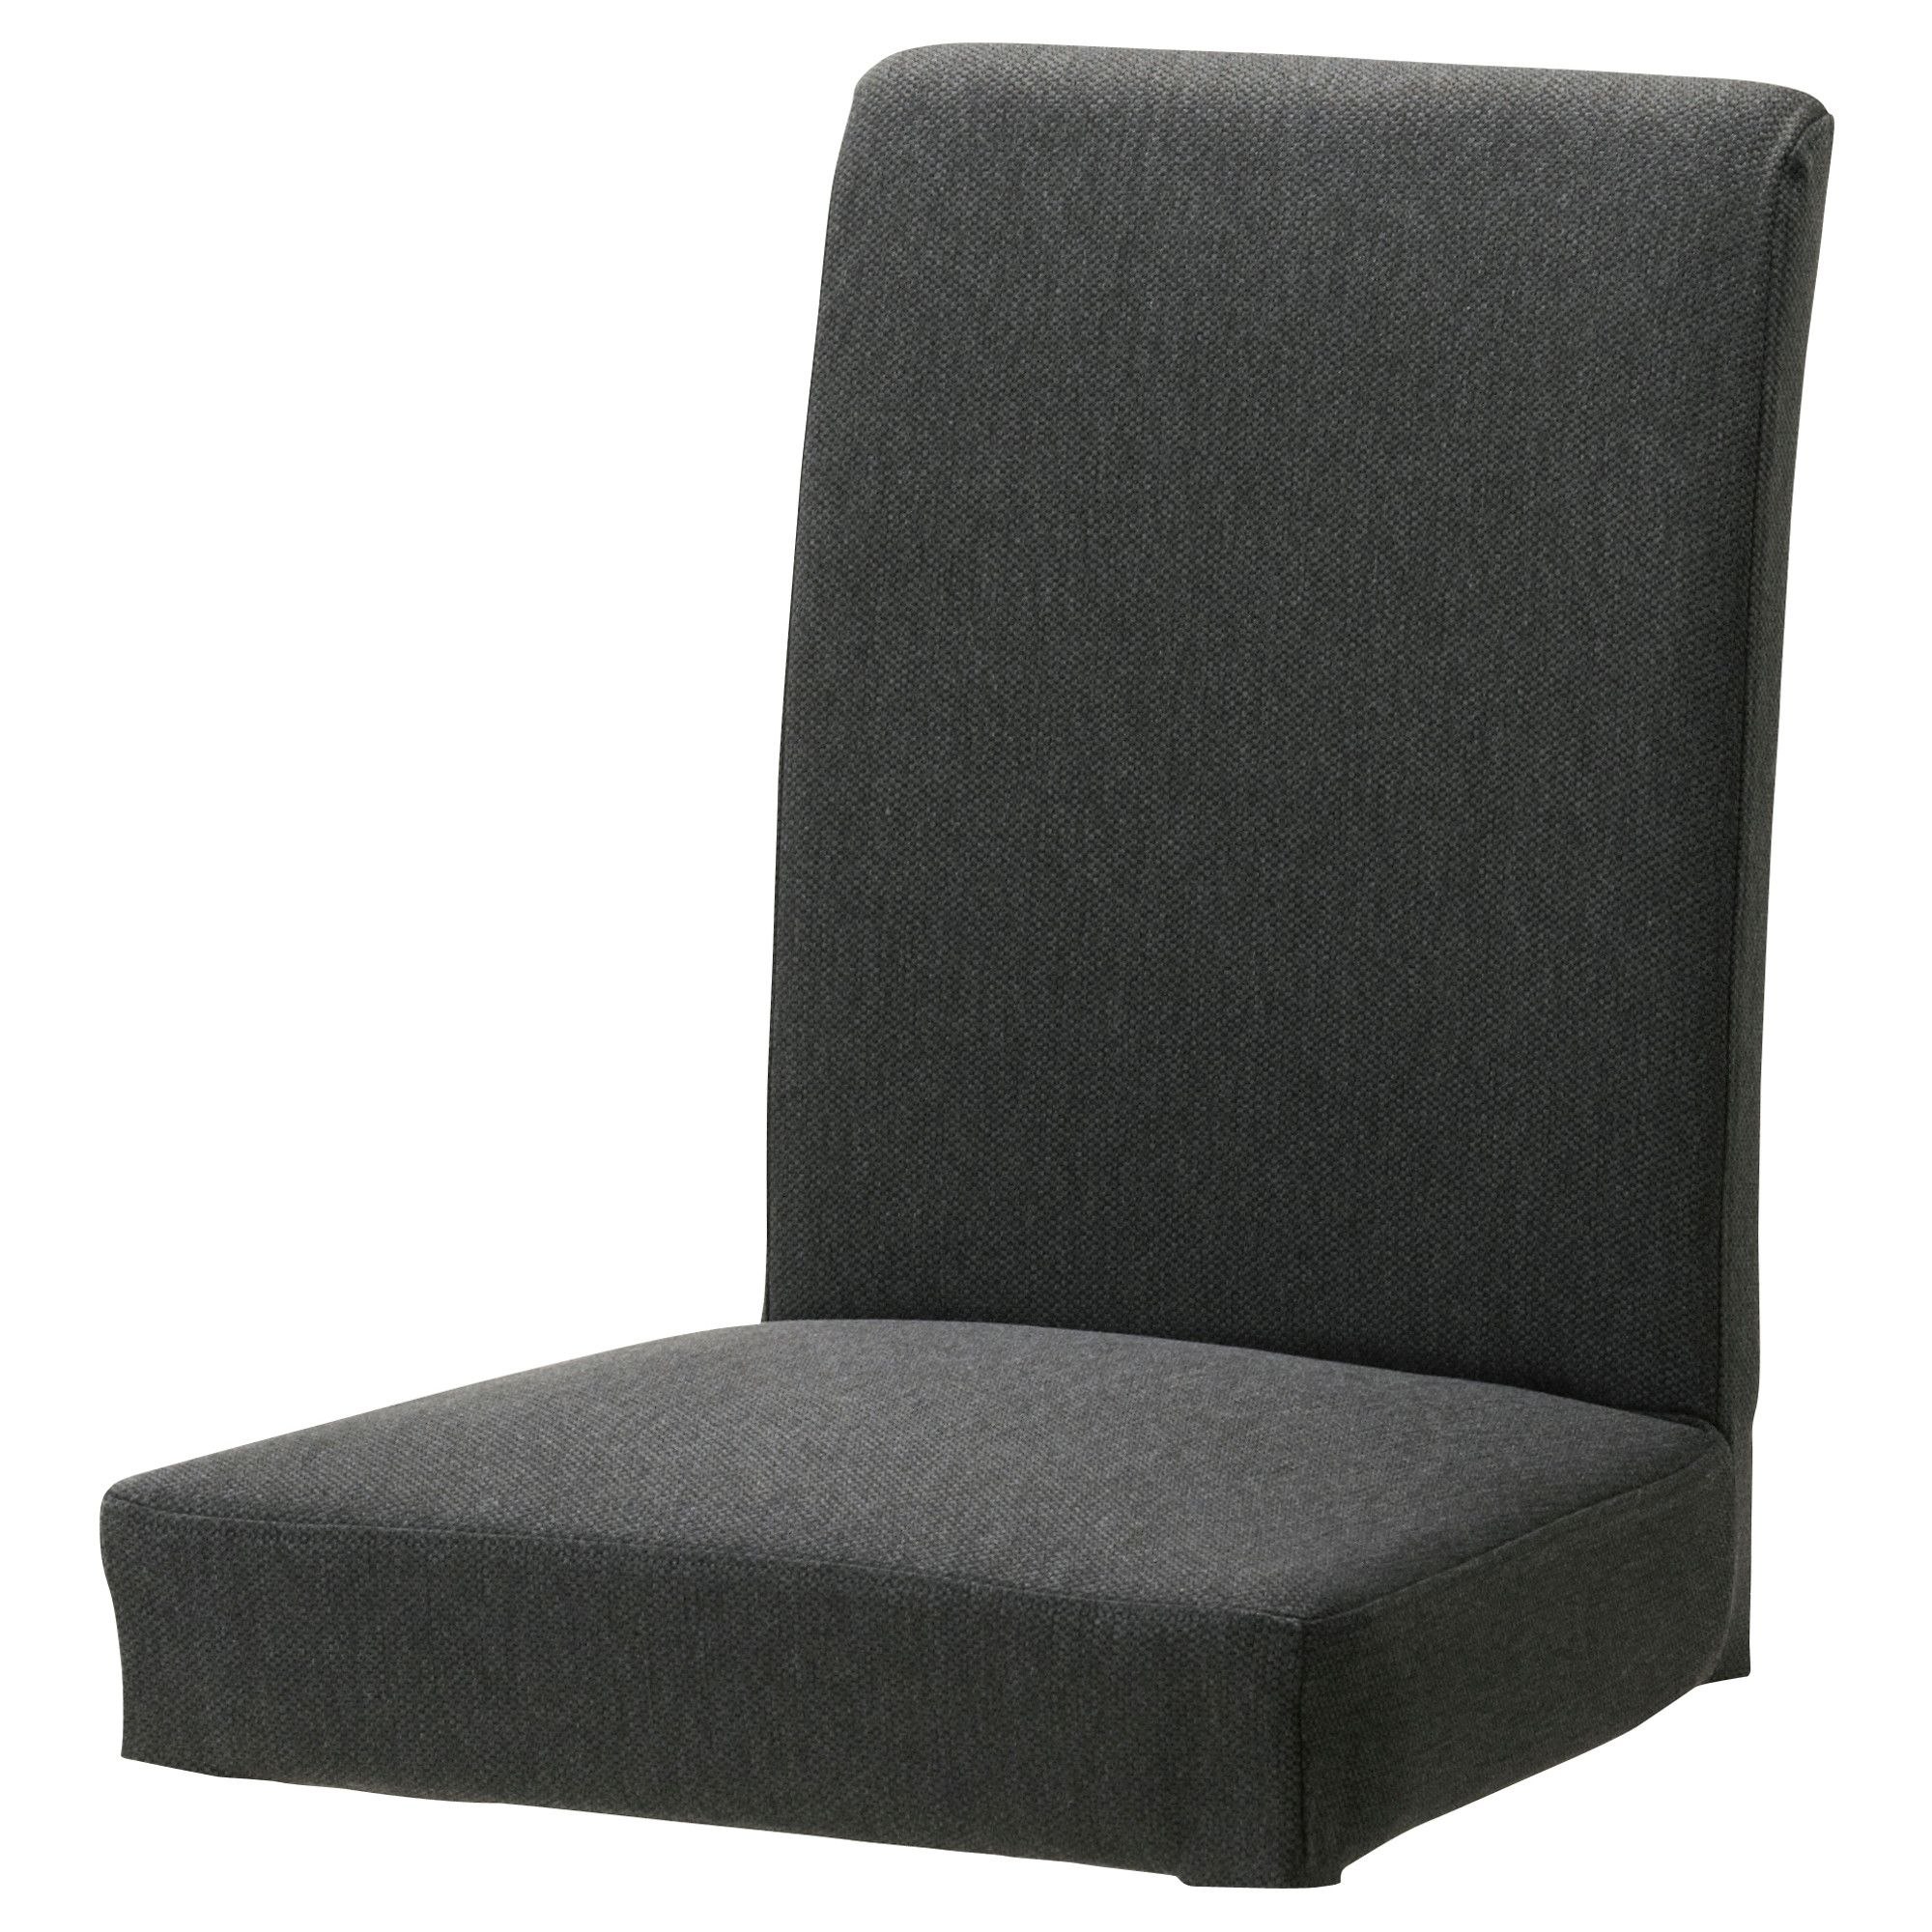 HENRIKSDAL Chair cover, Dansbo dark grey IKEA